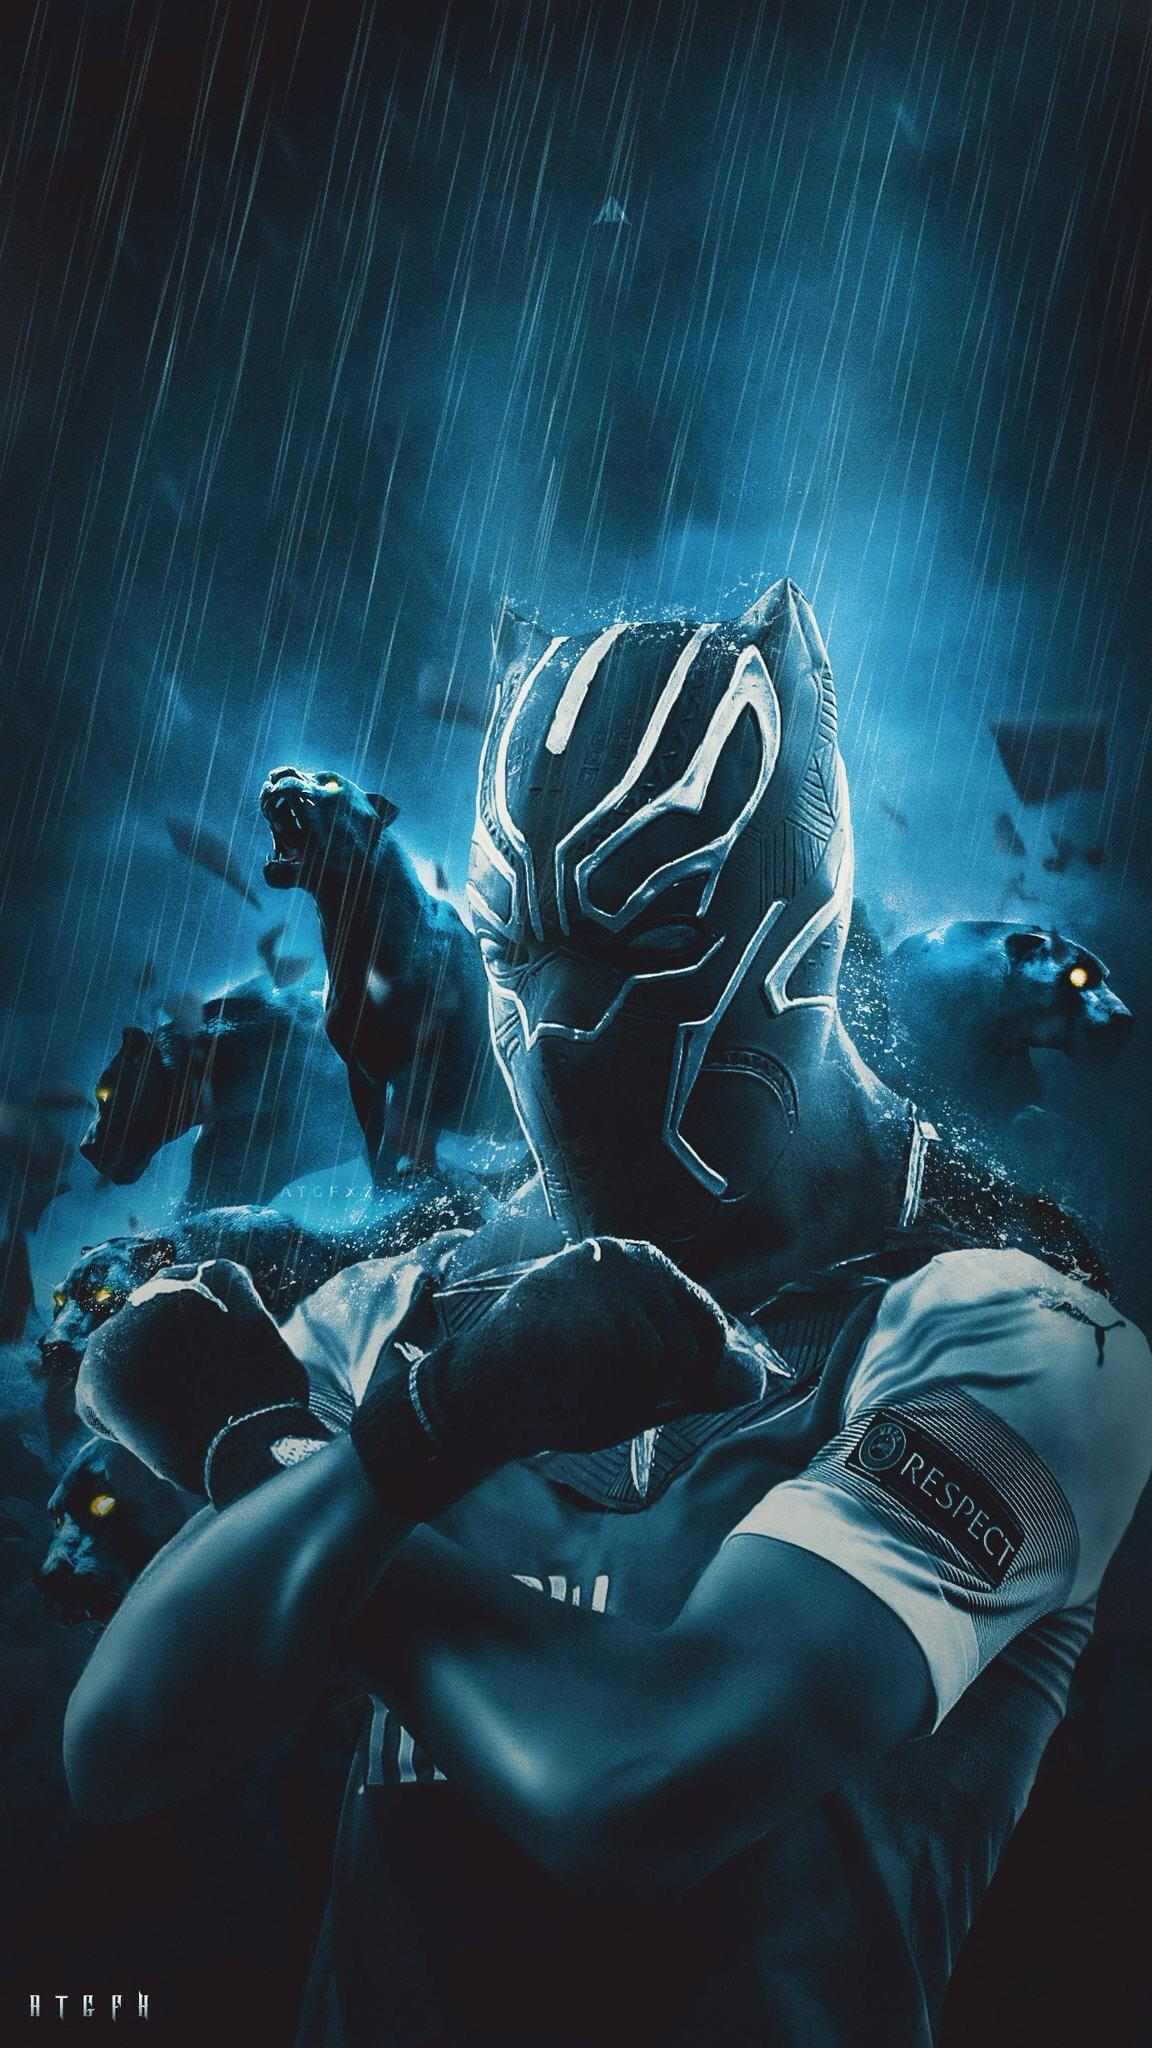 Aubameyang Black Panther Wallpaper Aubameyang Wallpaper Black Panther 193581 Hd Wallpaper Backgrounds Download